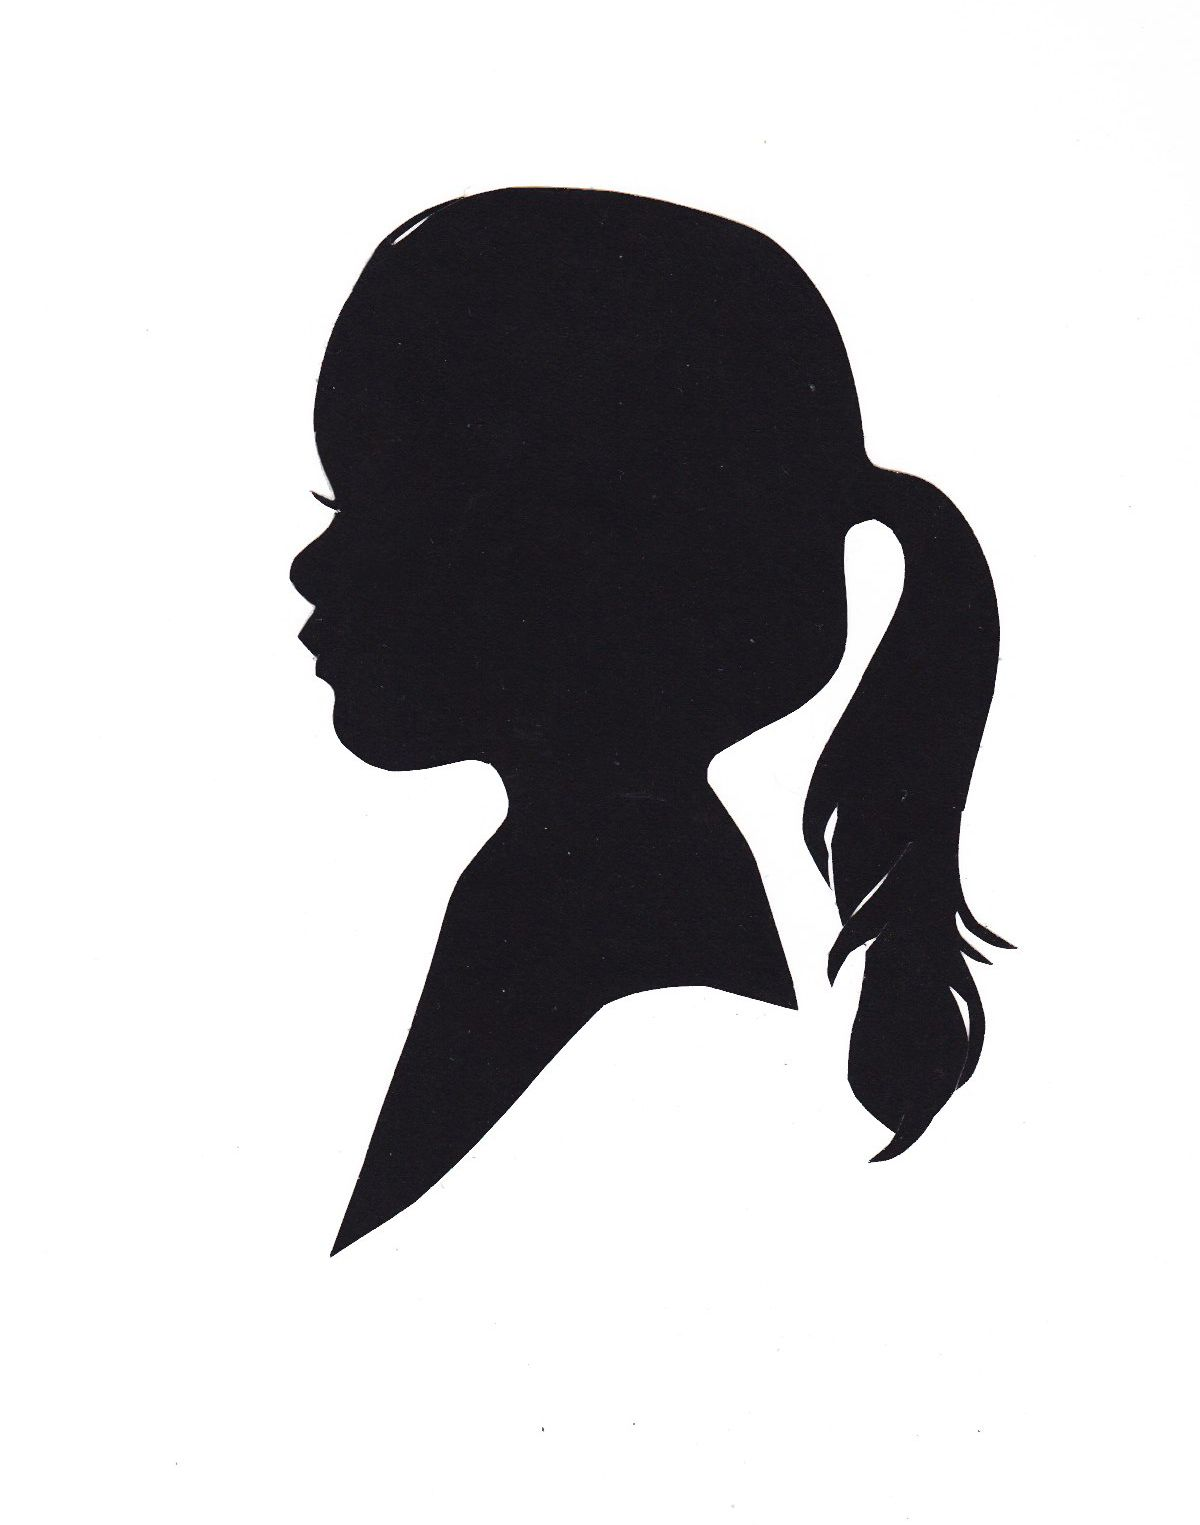 Silhouette of a little girl with ponytail